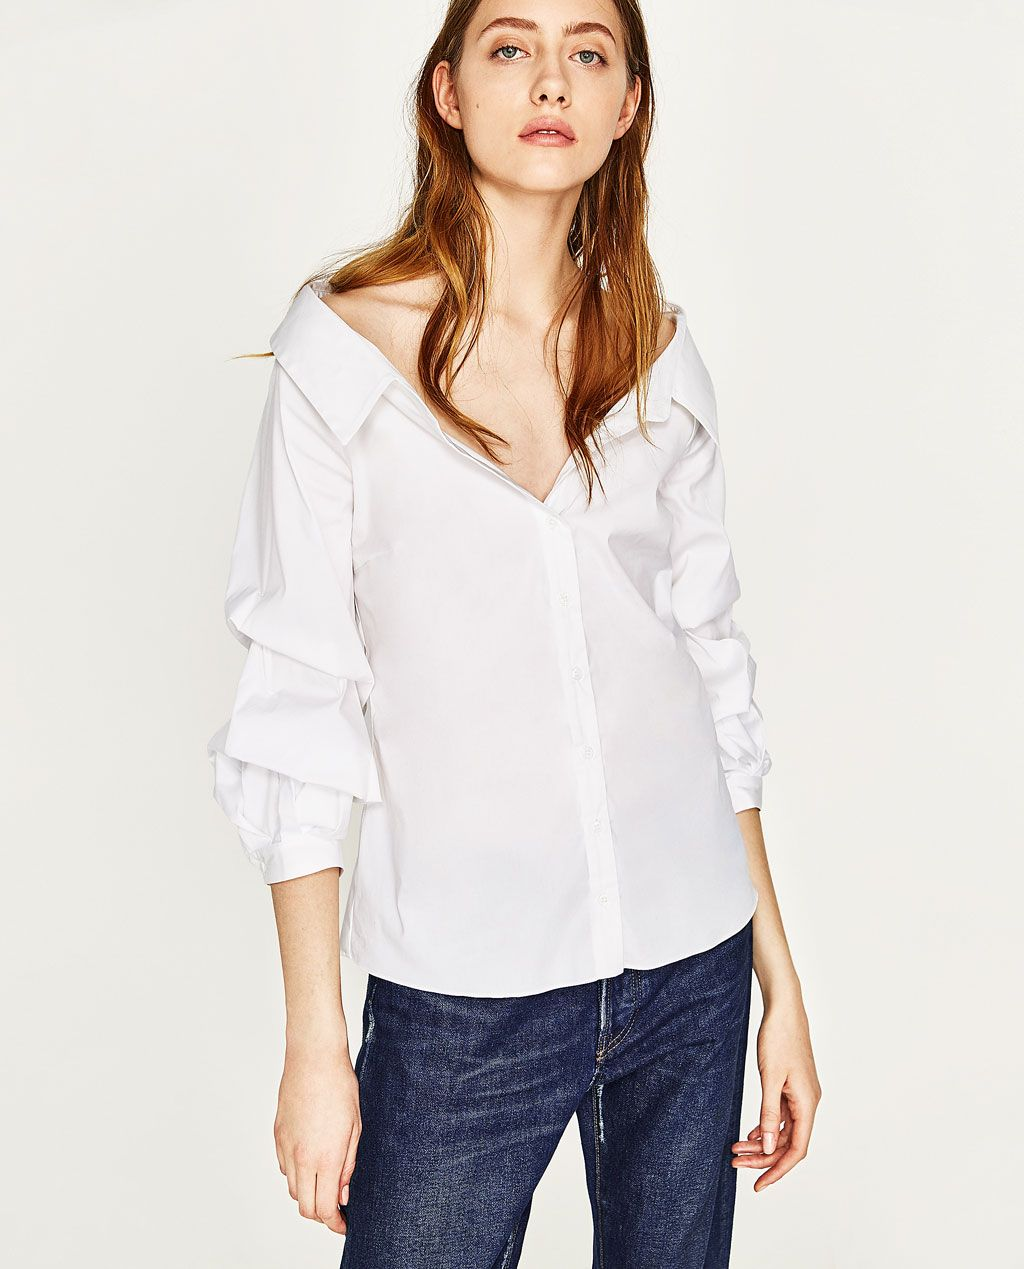 3a014cdcb53 WIDE OPEN NECK SHIRT WITH PUFFY SLEEVES-NEW IN-WOMAN | ZARA United States